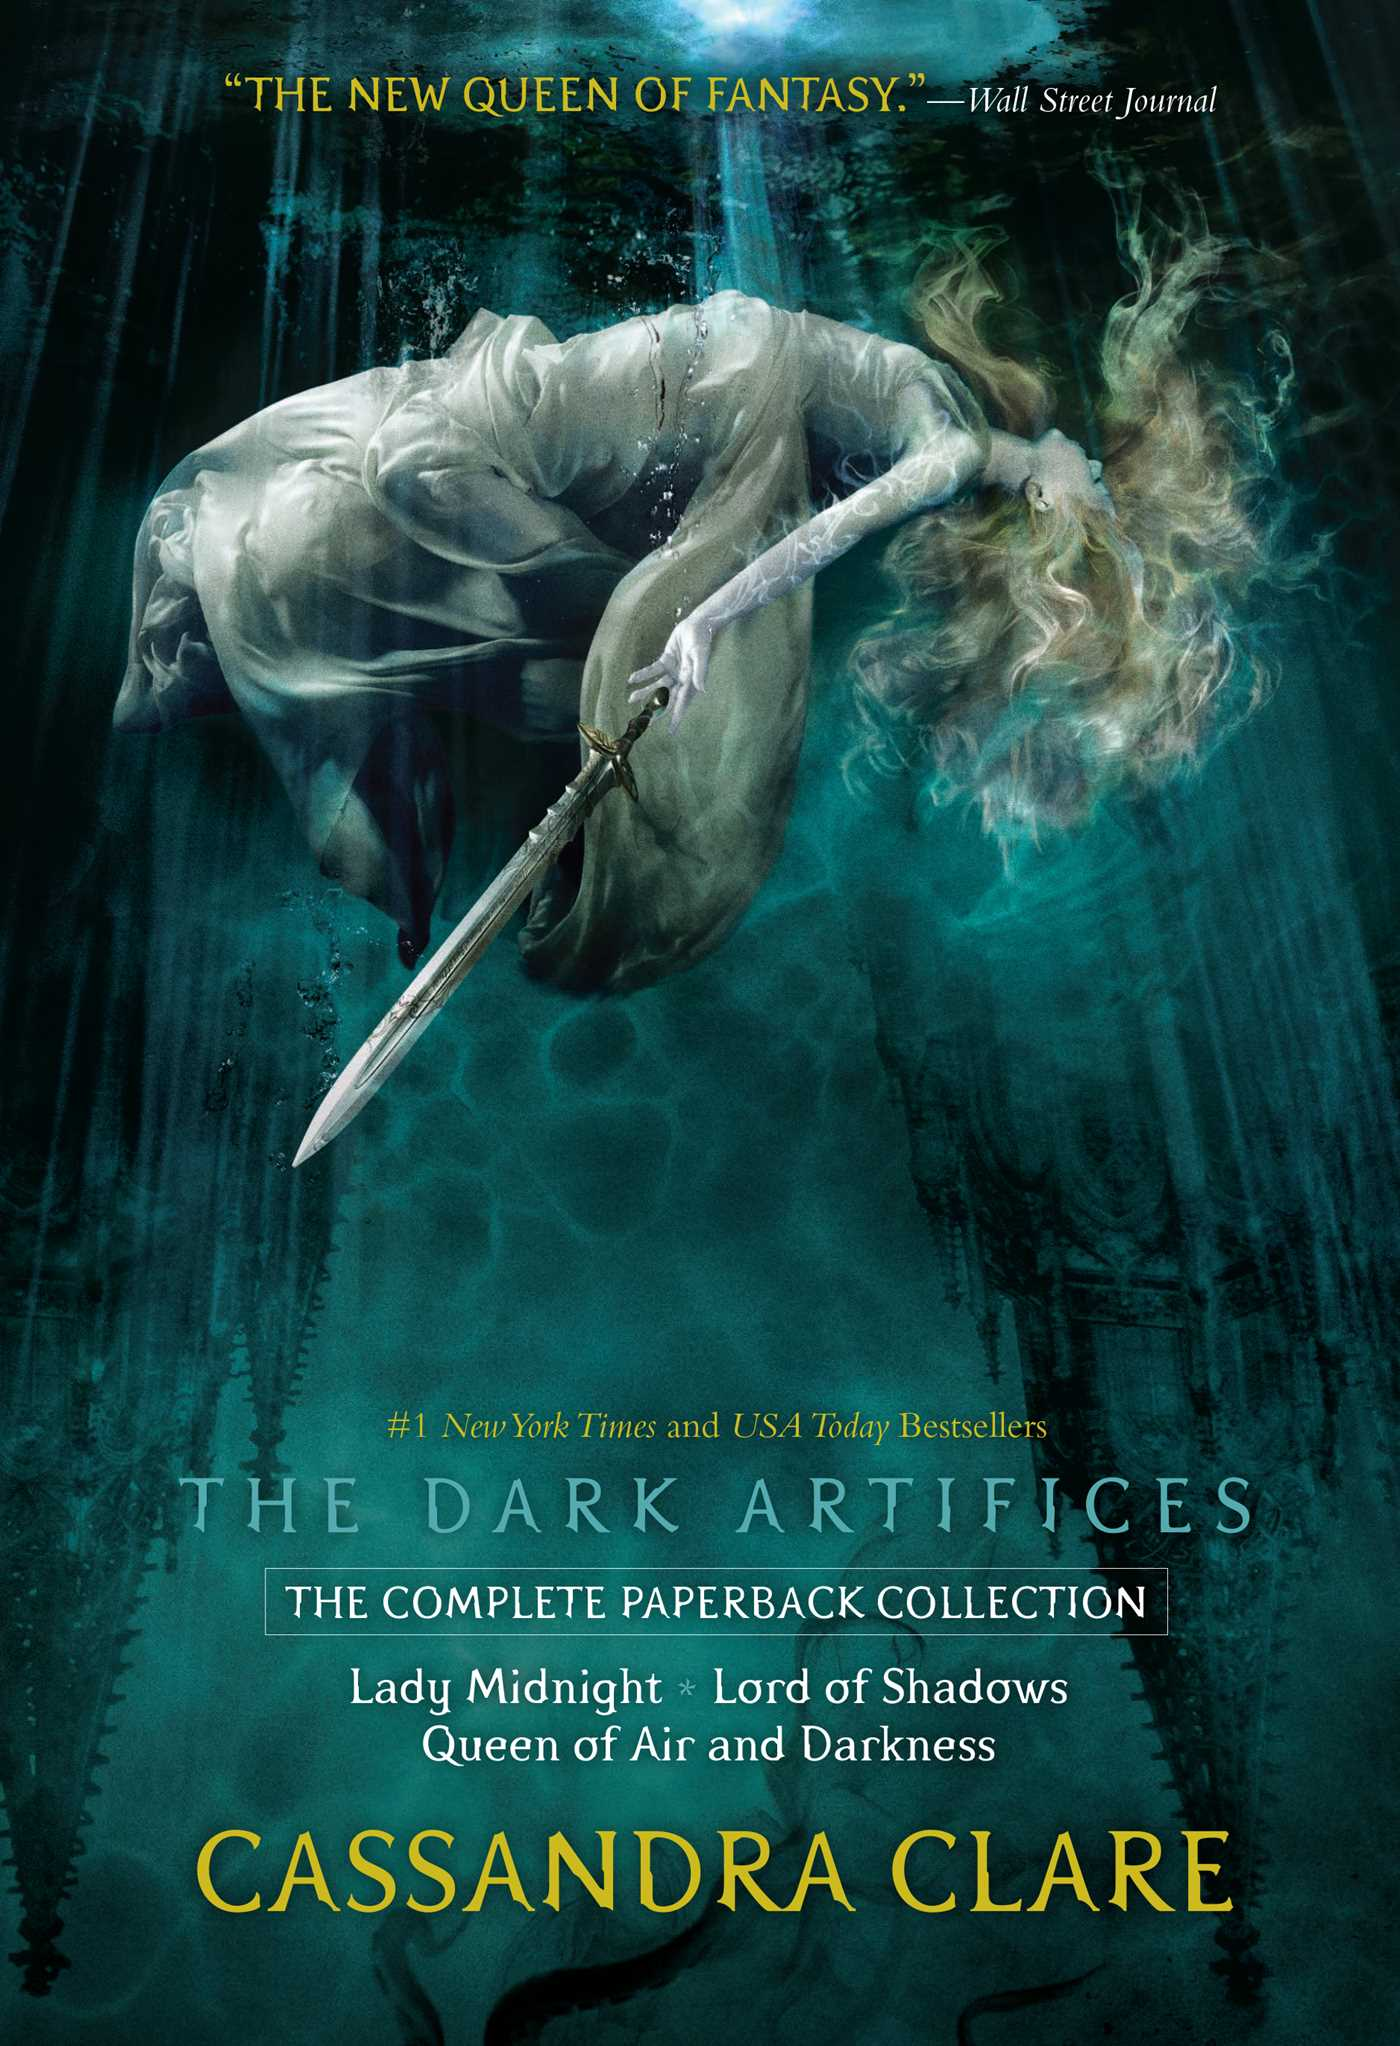 The Dark Artifices, the Complete Paperback Collection: Lady Midnight; Lord of Shadows; Queen of Air and Darkness by Cassandra Clare